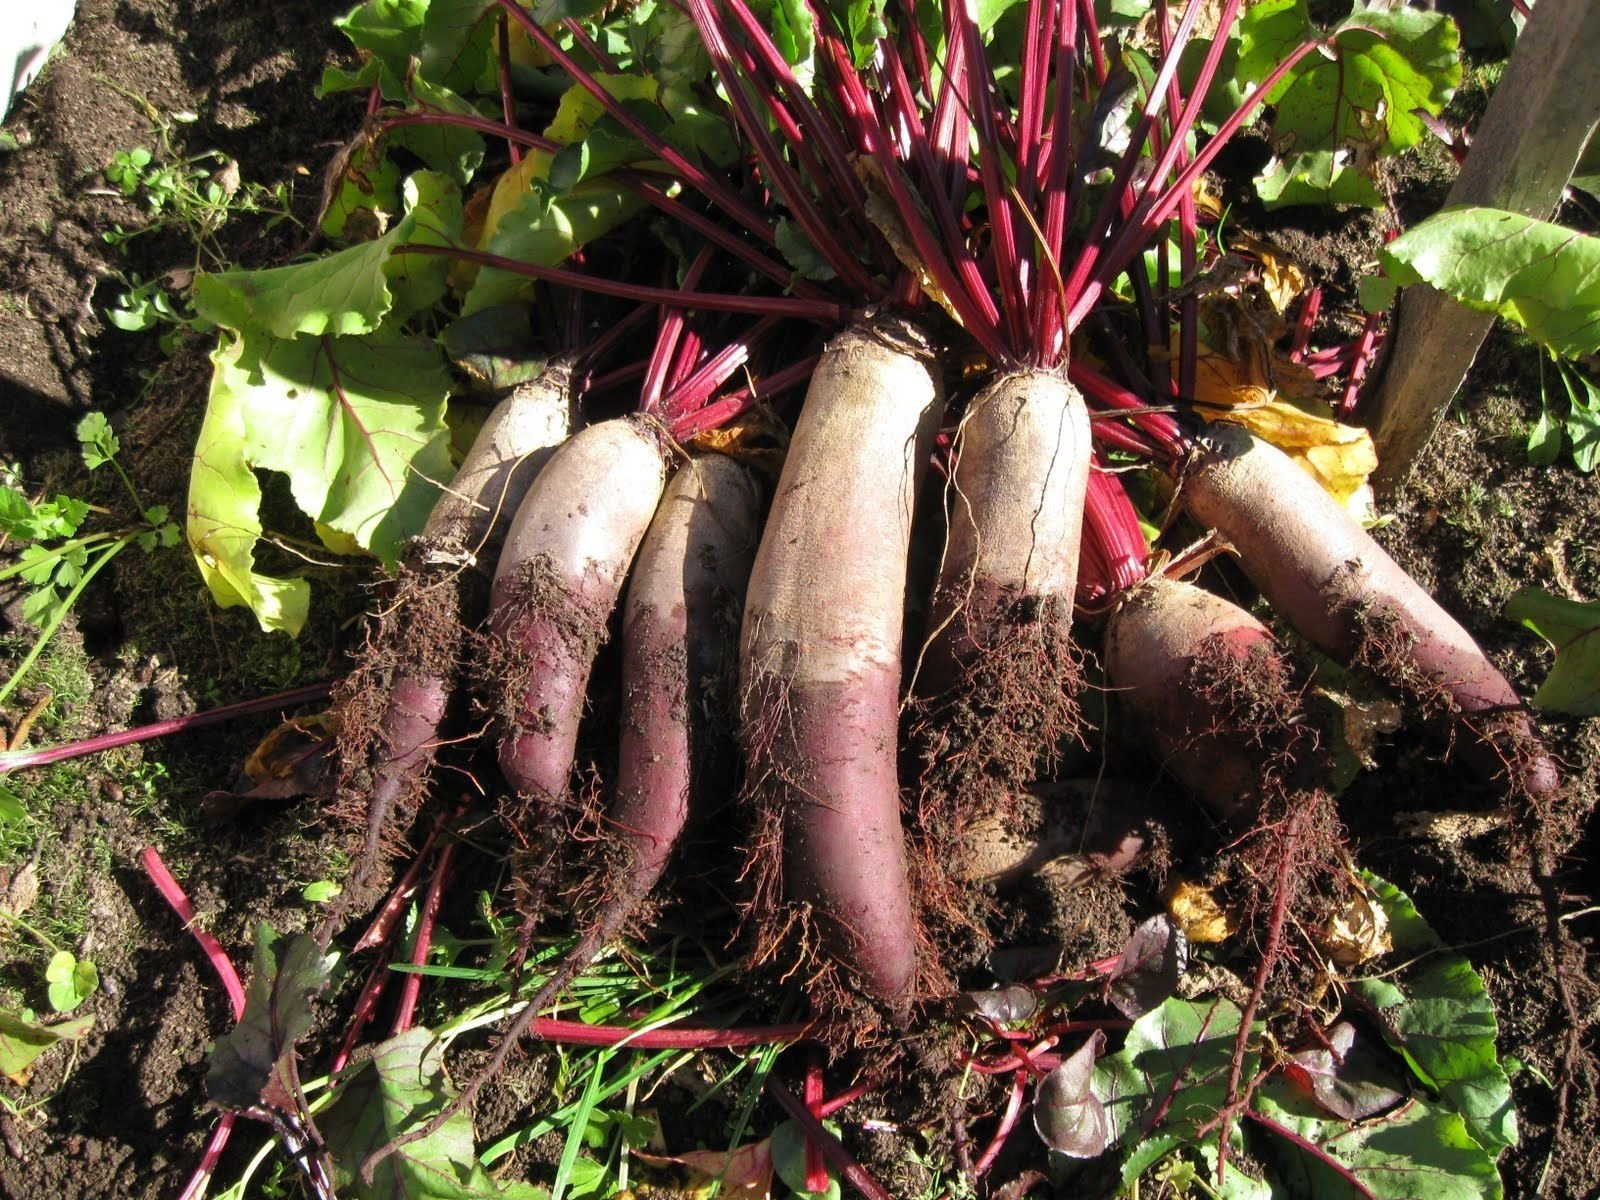 Giant Beet Red Mangle Mammoth Seeds (48K or 2 lb Seeds)